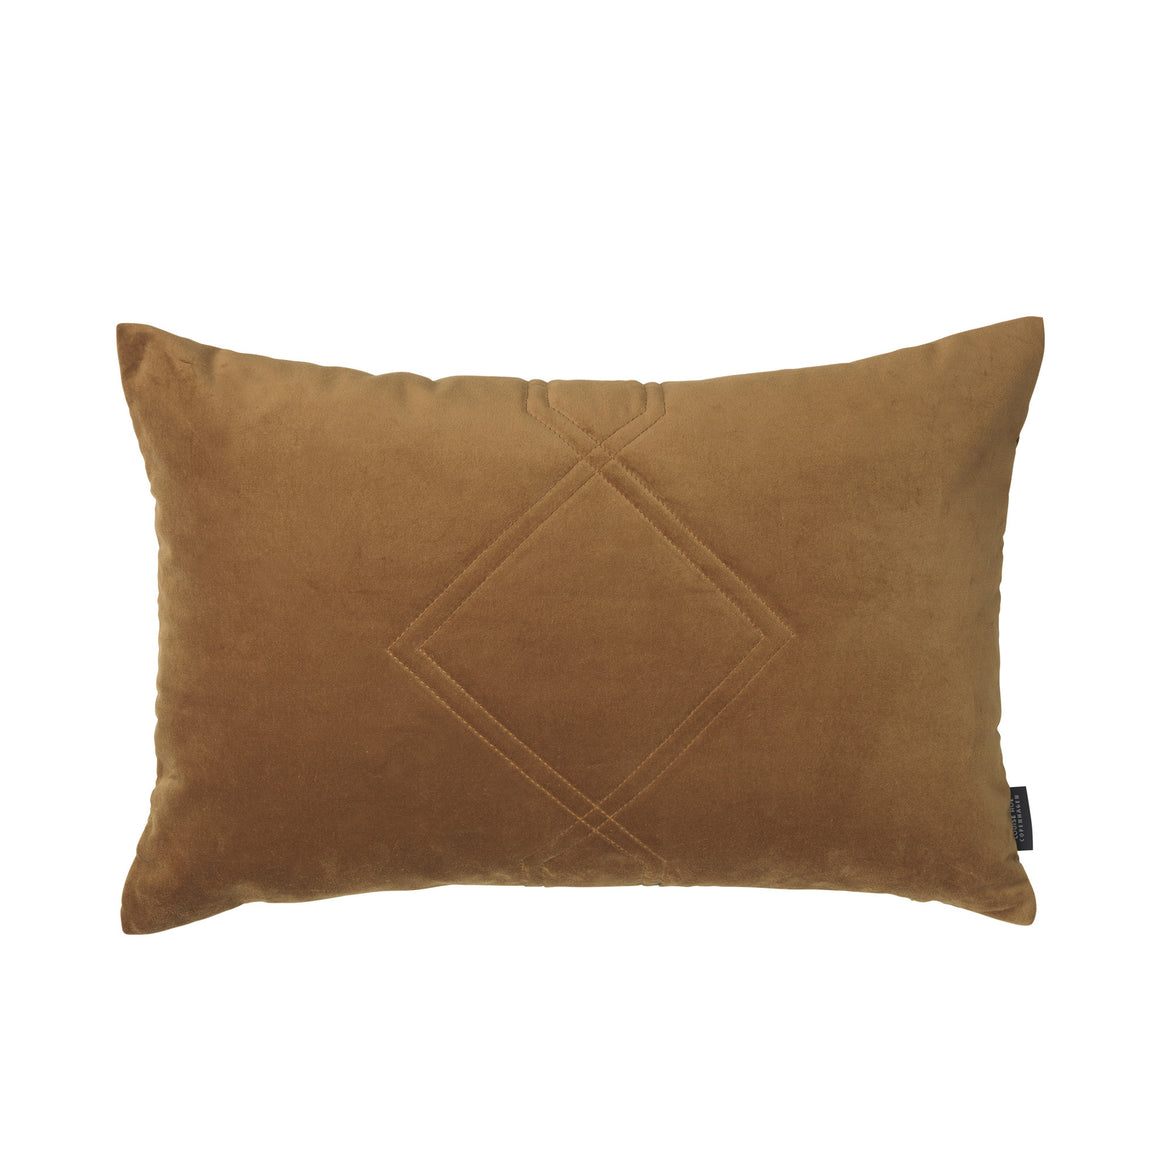 Louise Roe Diamond Quilted pude i velour, Velvet Amber 845